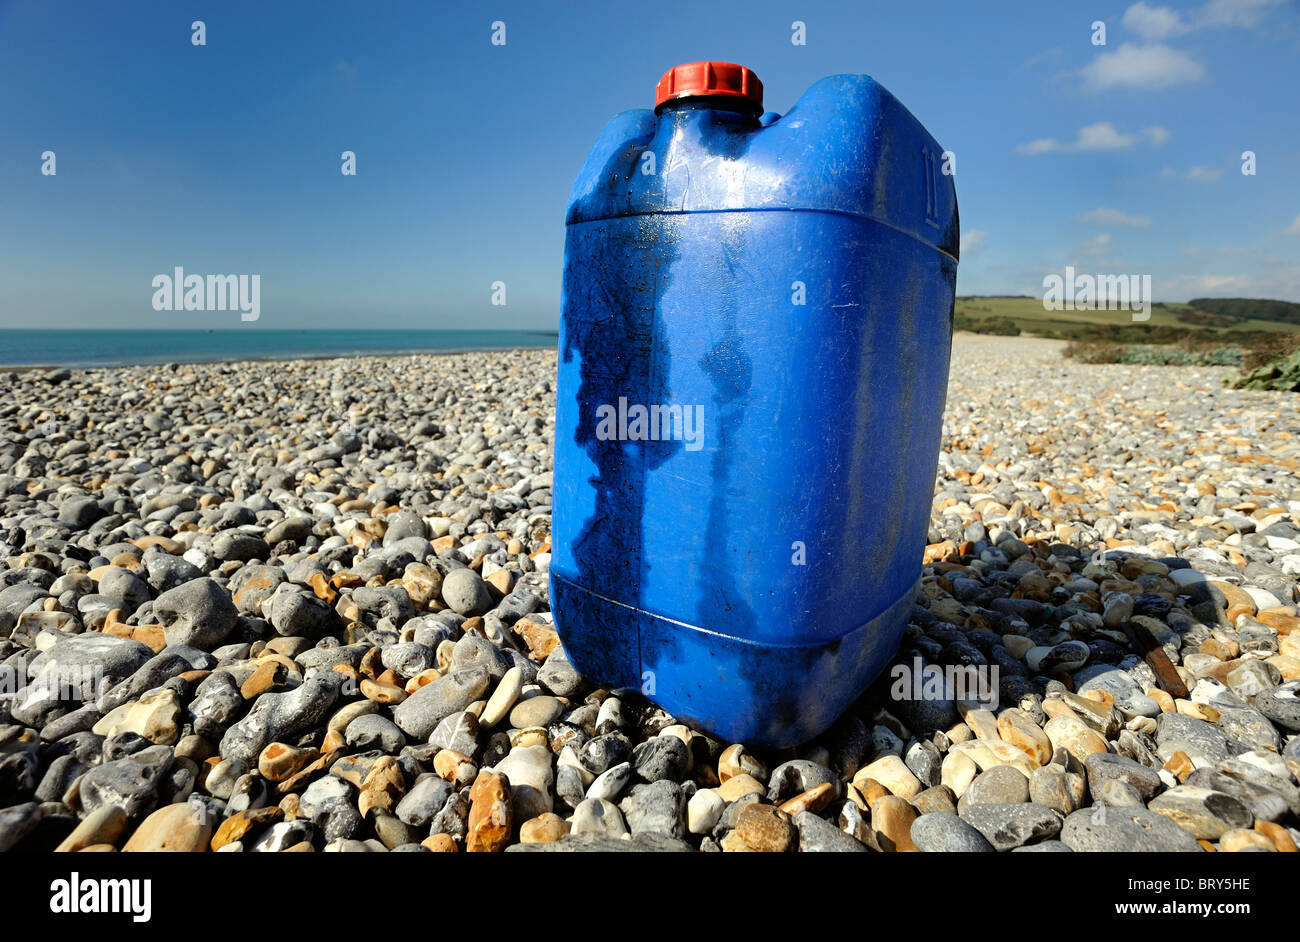 A plastic container of oil leaking and polluting a remote pebble beach - Stock Image